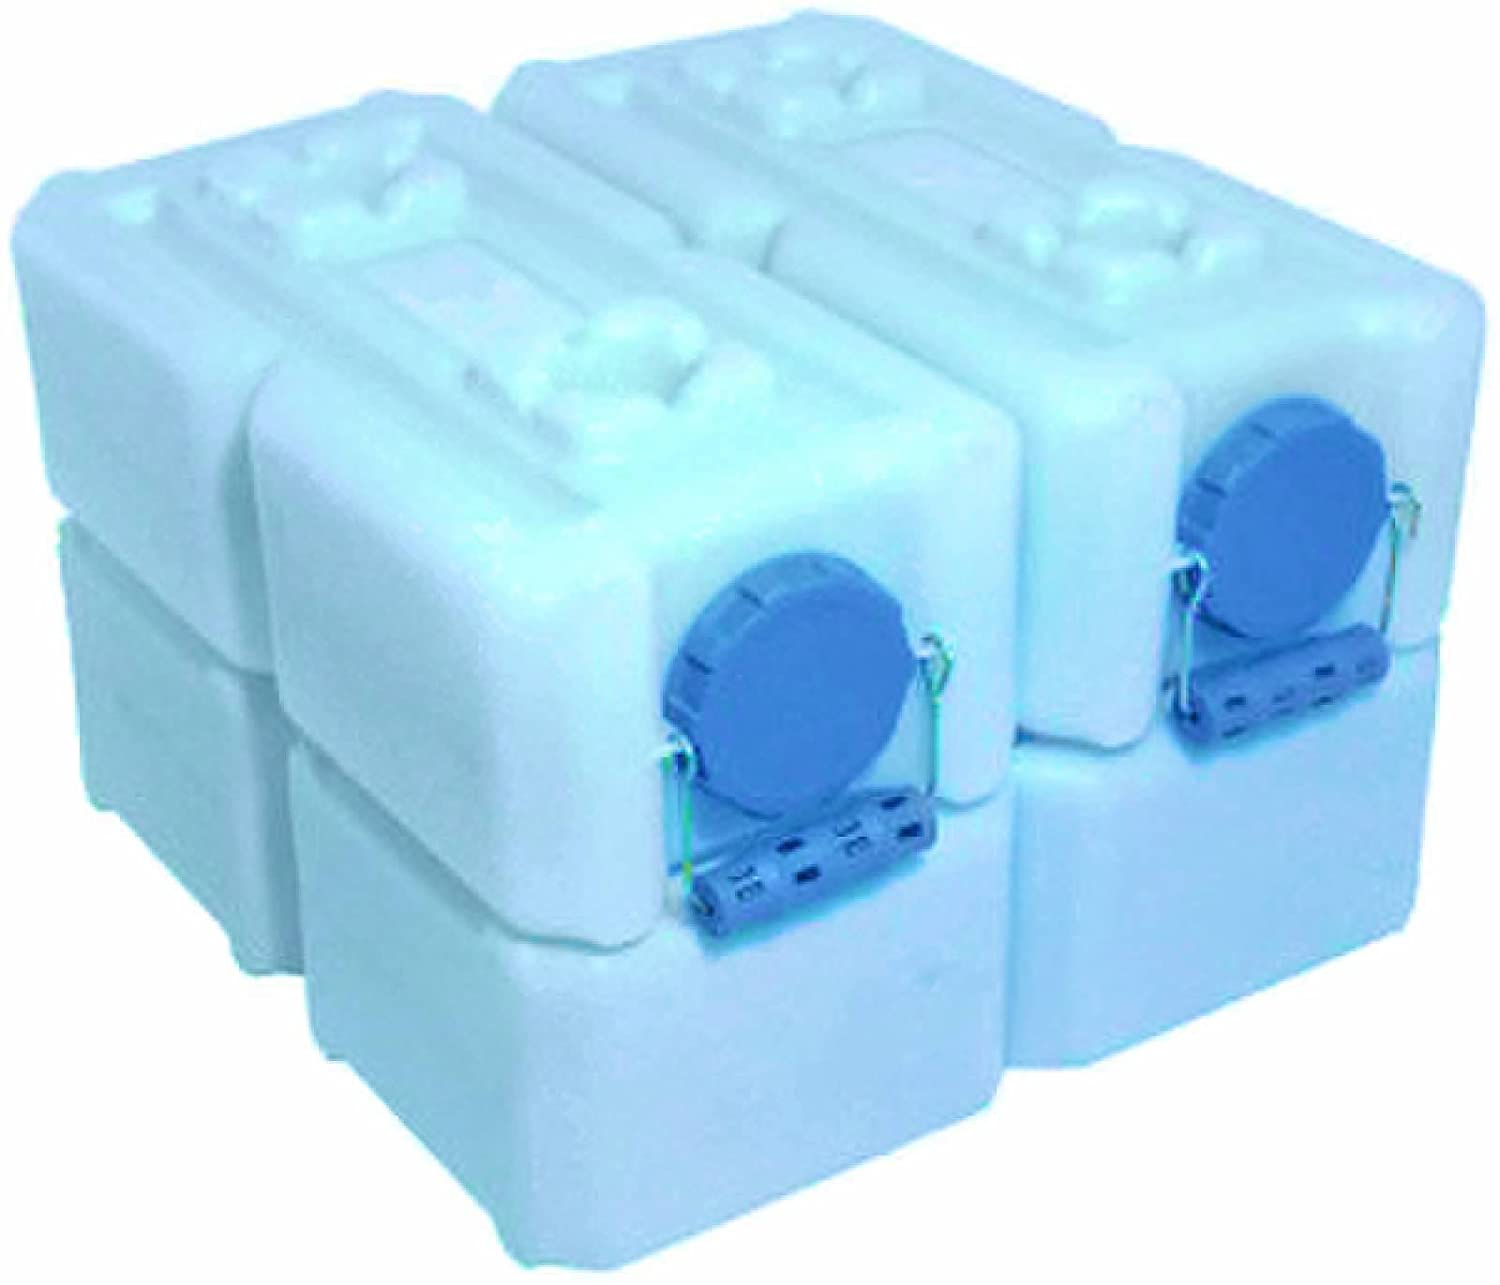 Water Storage Containers - WaterBrick - Blue by WaterBrick   B00905CO4Q